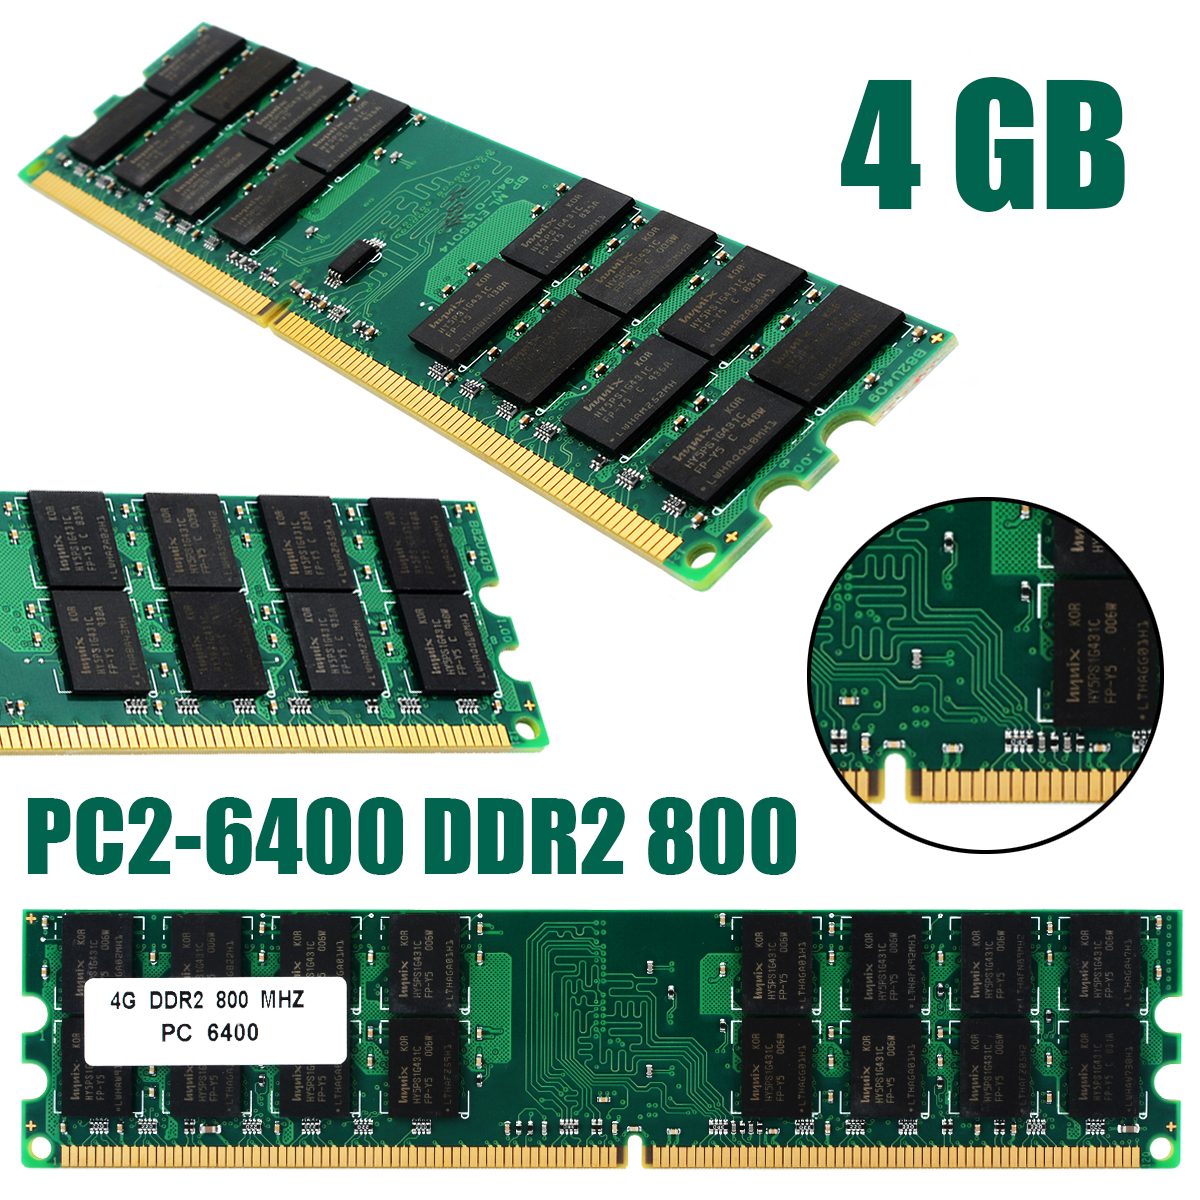 1pc Professional 4GB PC2-6400 DDR2 800MHZ Non-ECC 240Pin Memory Ram For AMD Desktop RAMs New